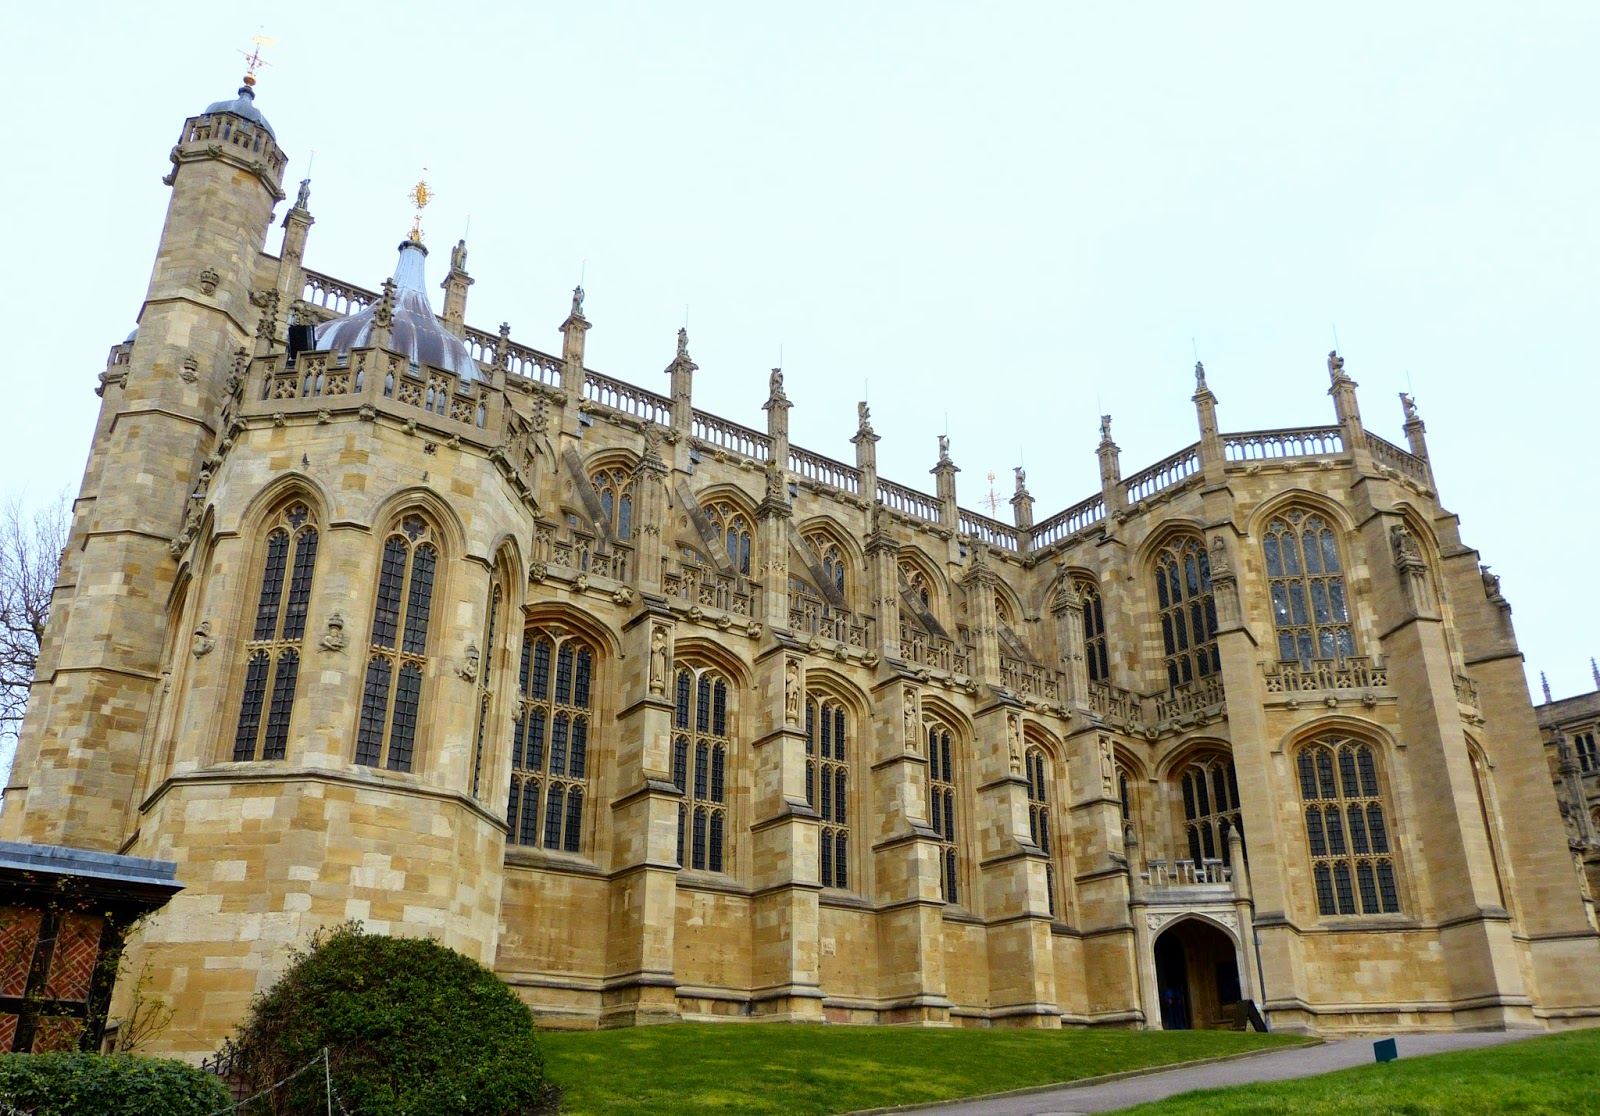 St George's Chapel, Lower Ward, Windsor Castle